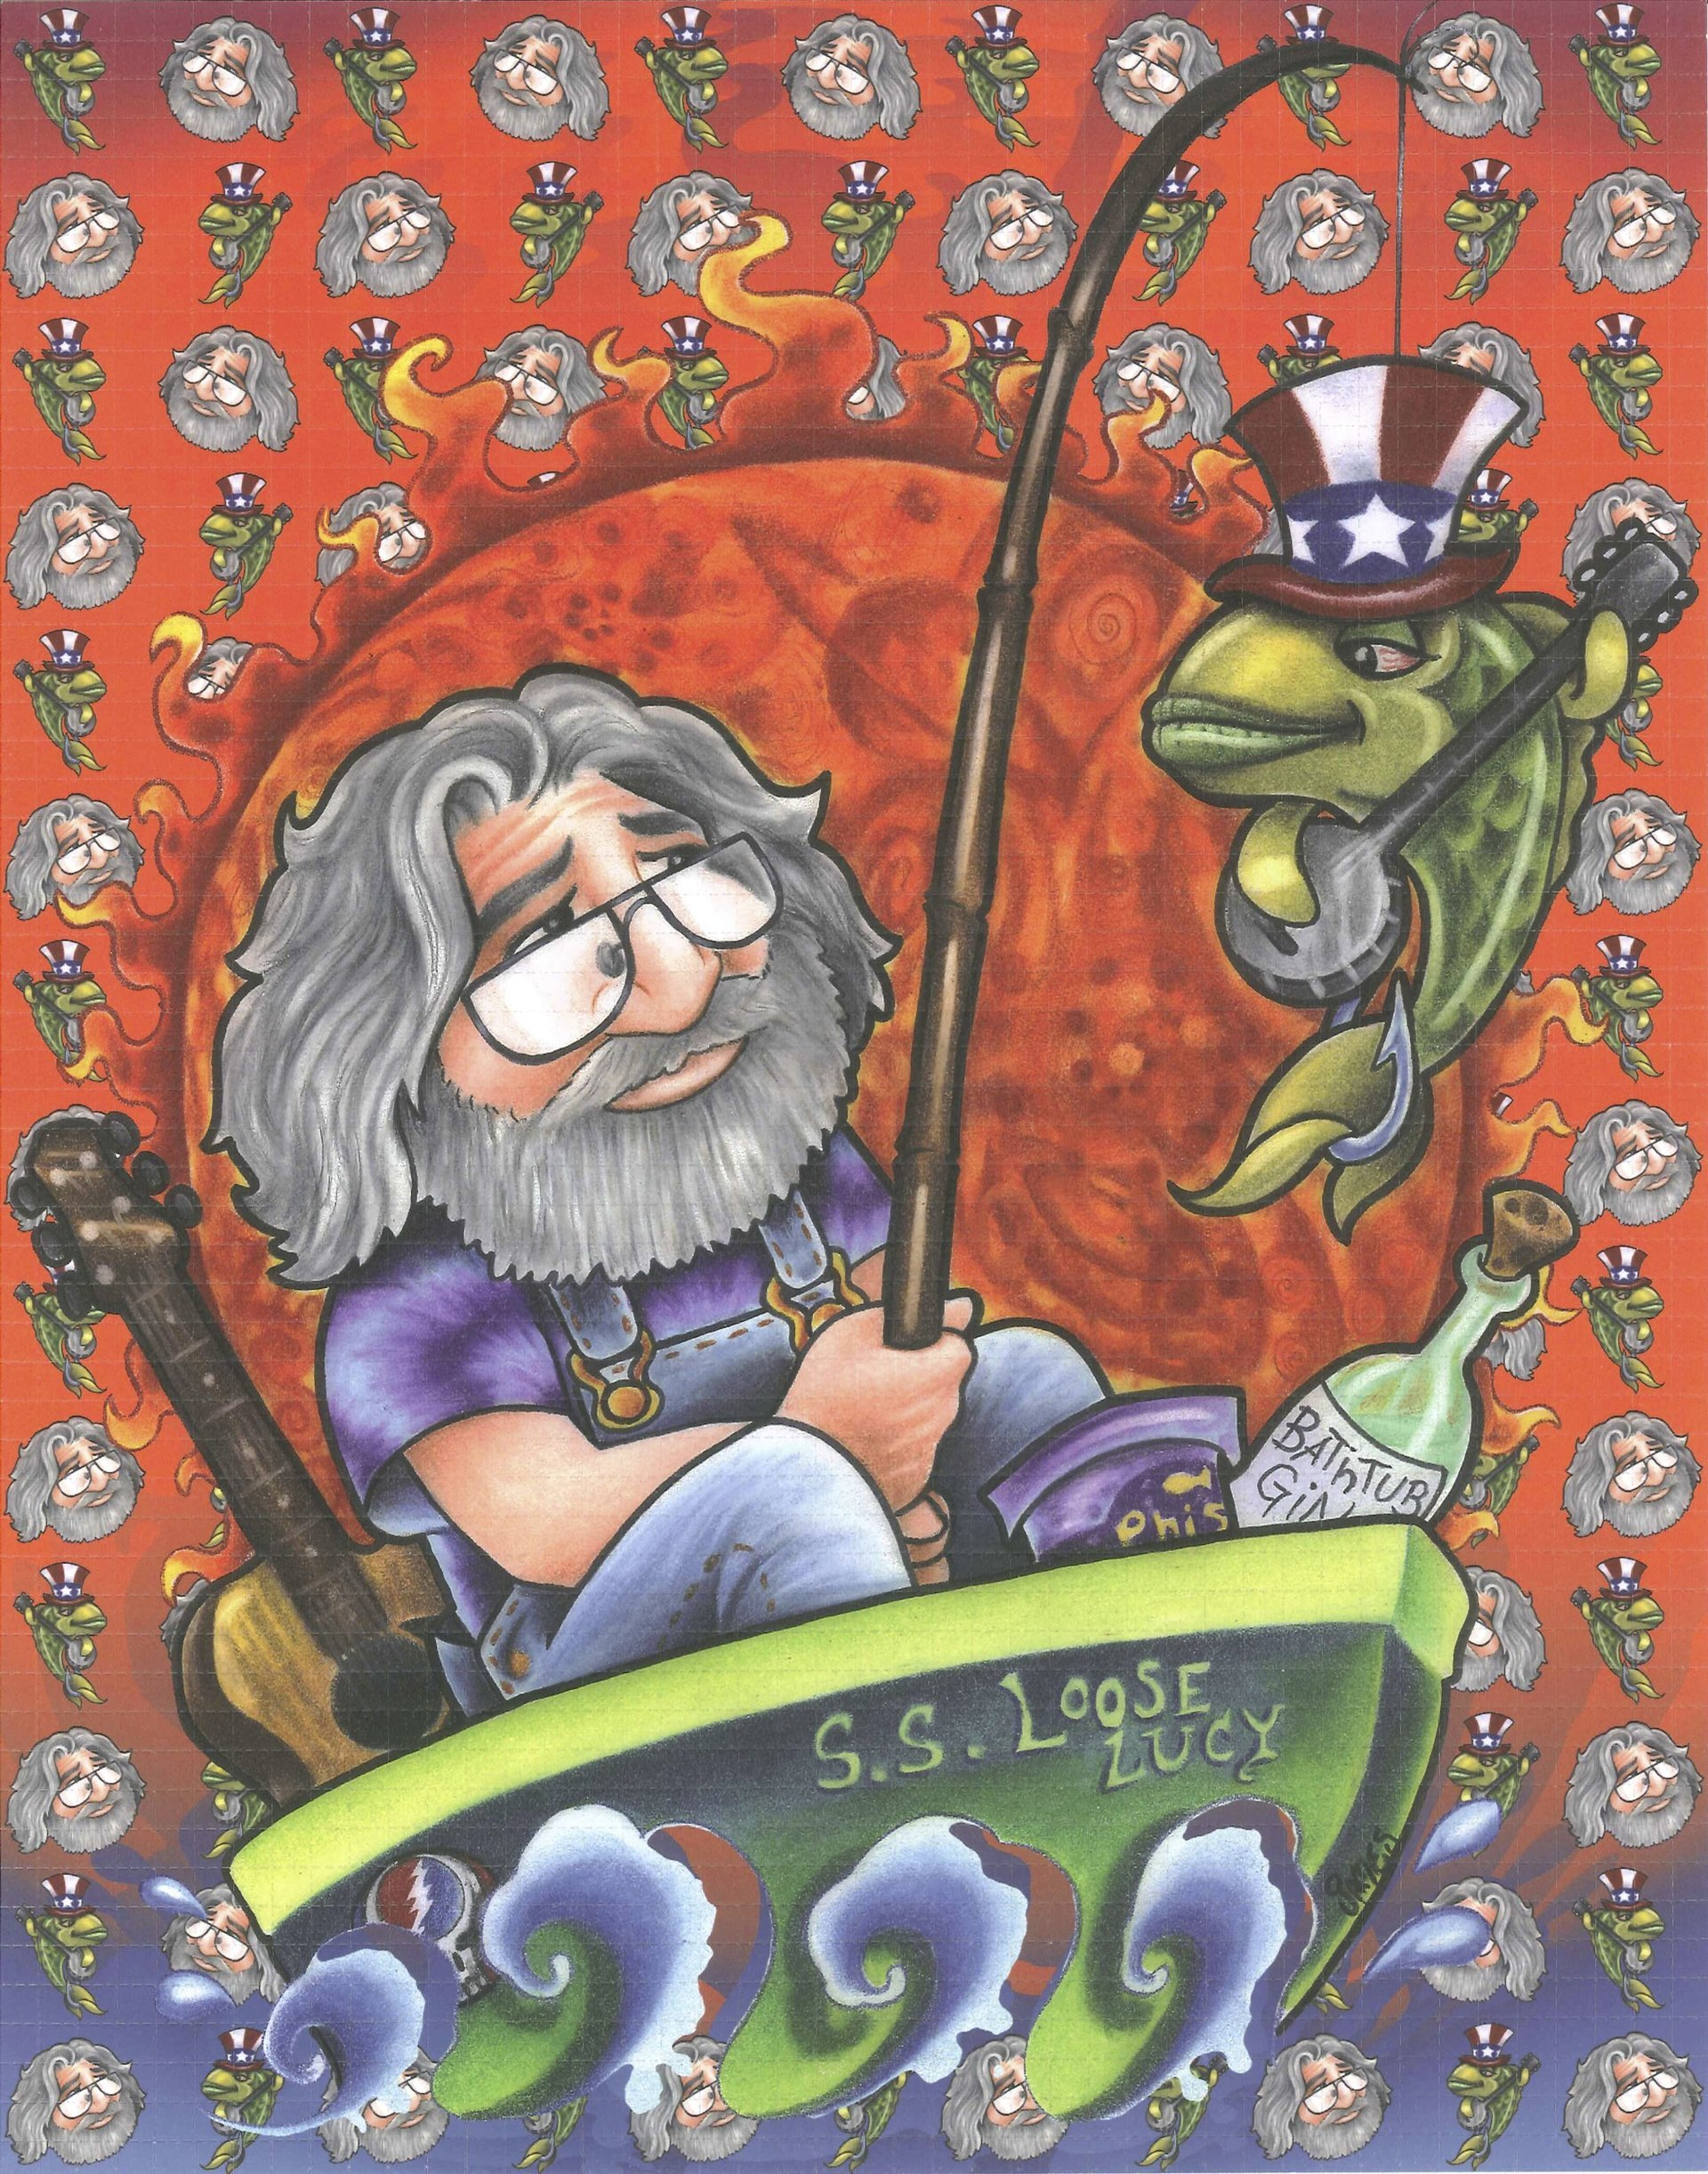 Jerry Gone Fishin on the S.S. Loose Lucy Blotter